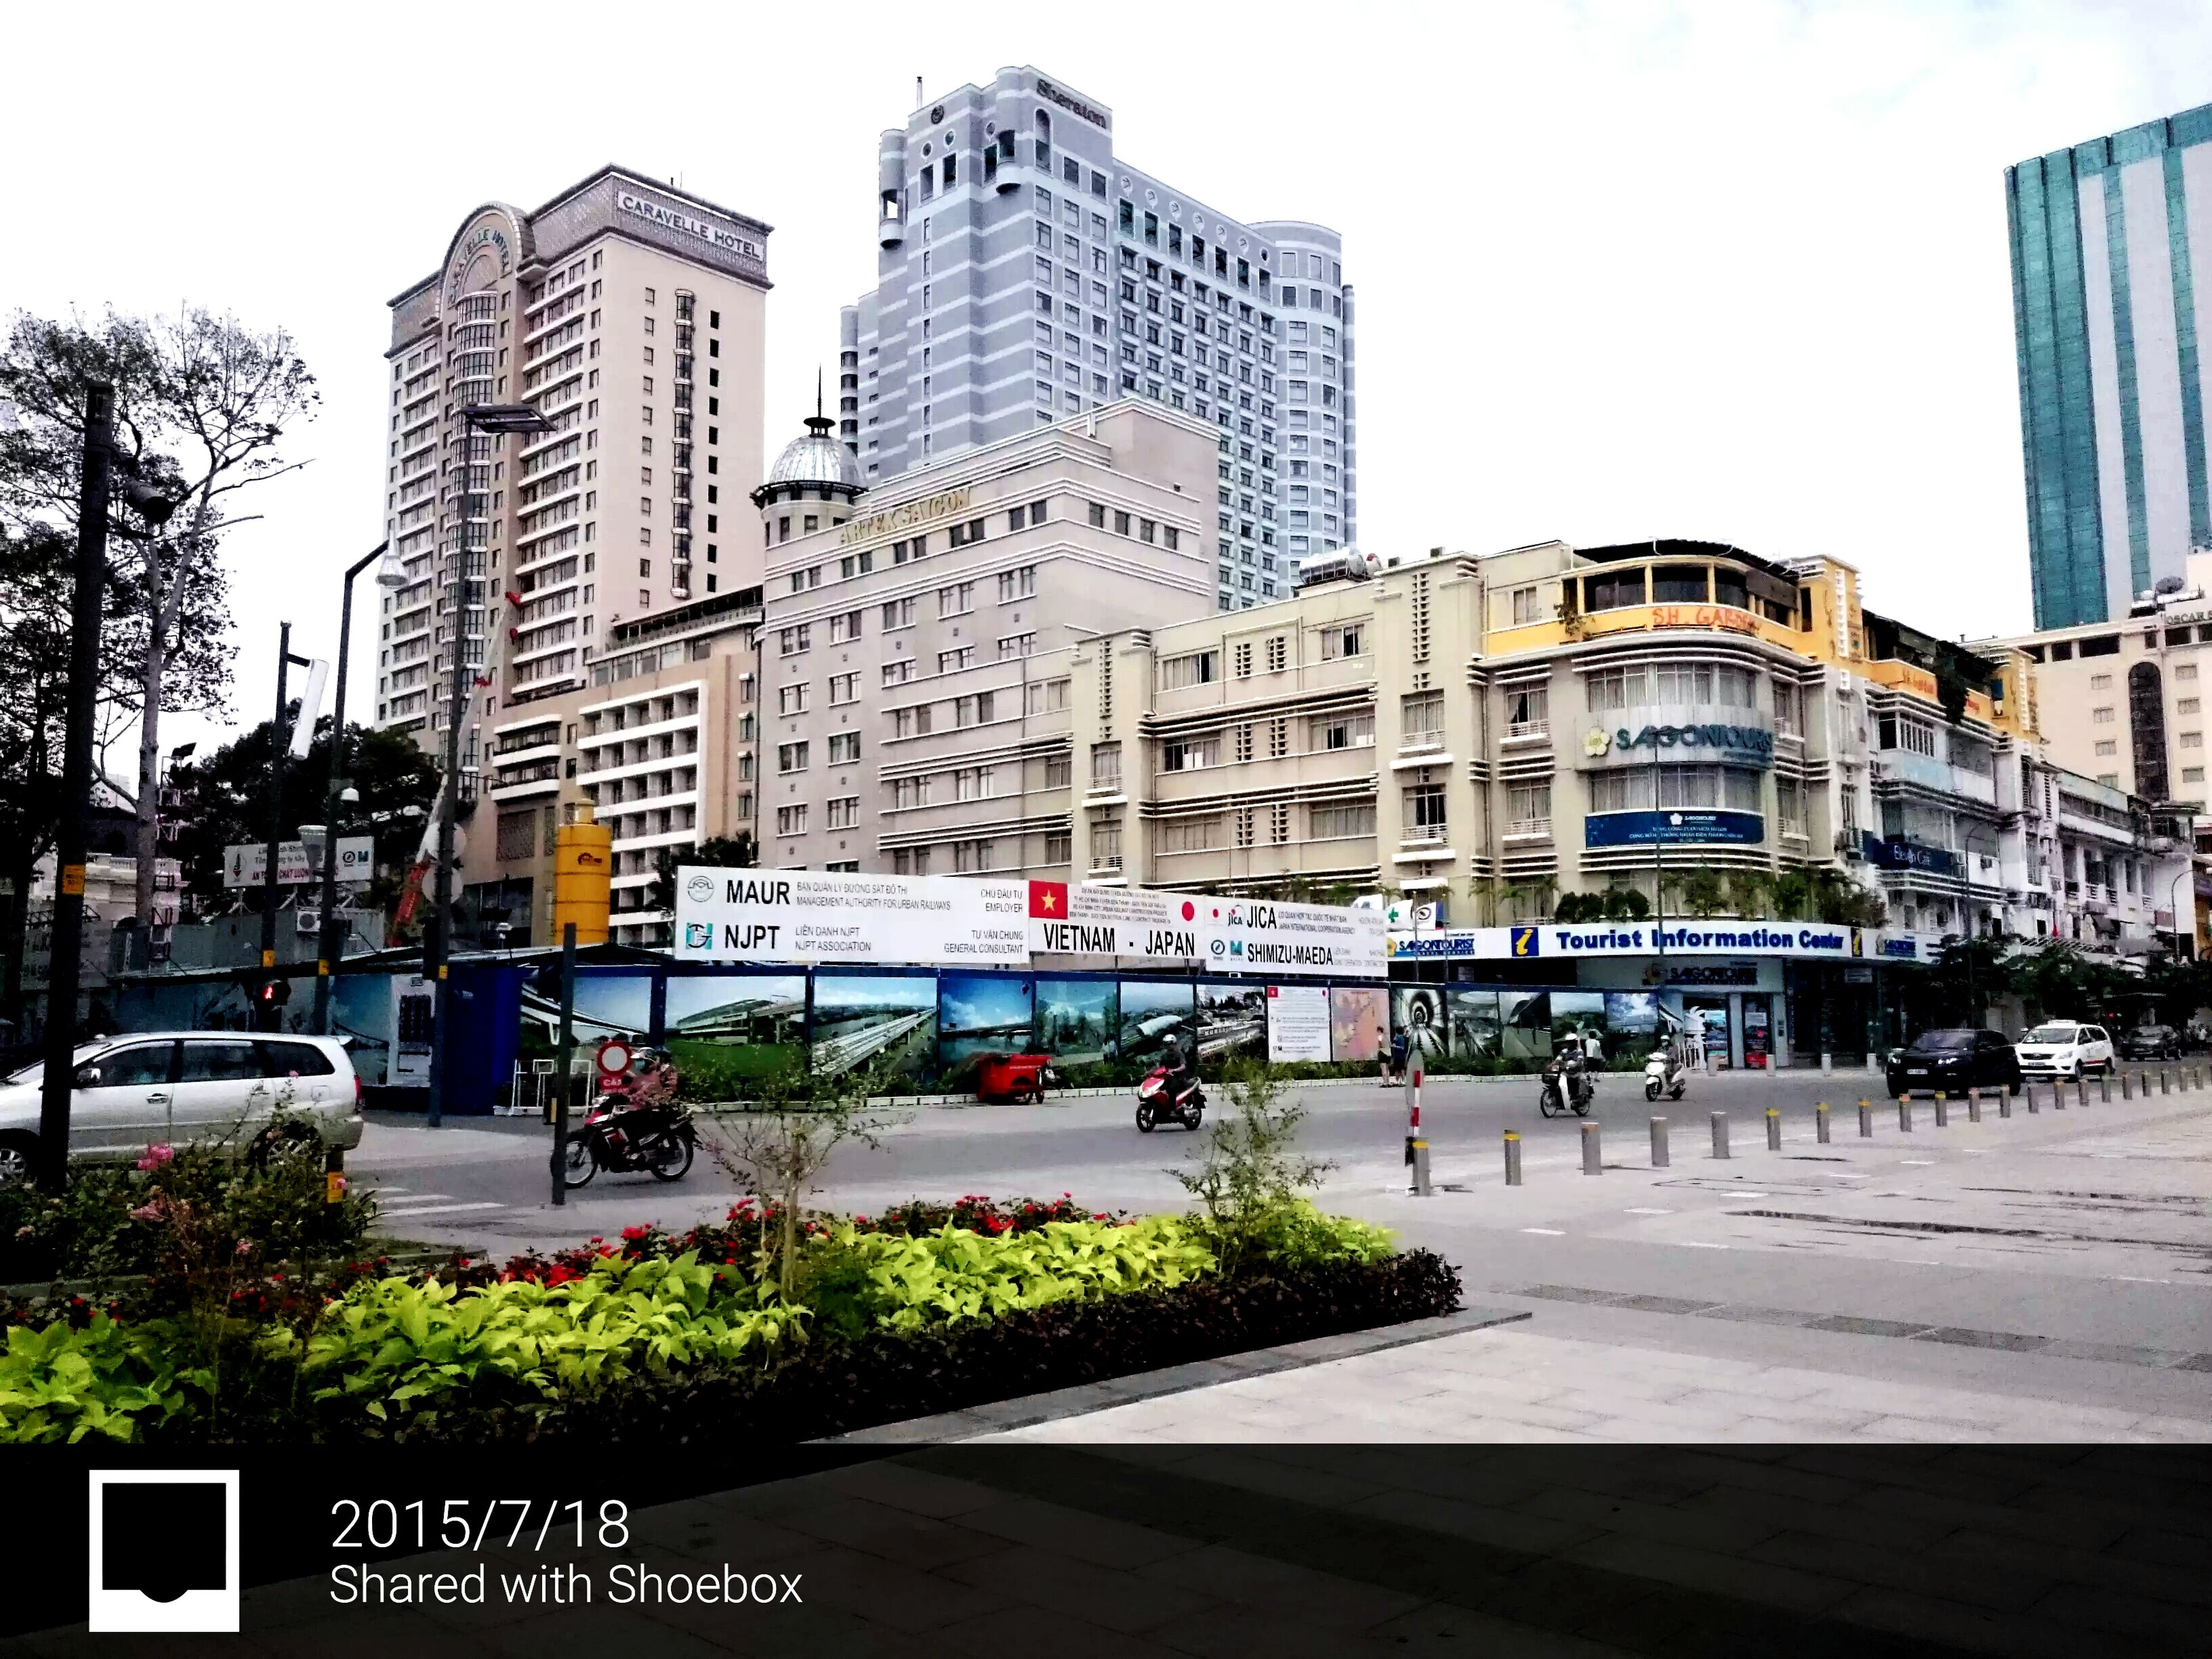 building exterior, architecture, transportation, city, built structure, car, mode of transport, land vehicle, street, city life, city street, traffic, road, incidental people, building, text, public transportation, clear sky, bus, sky